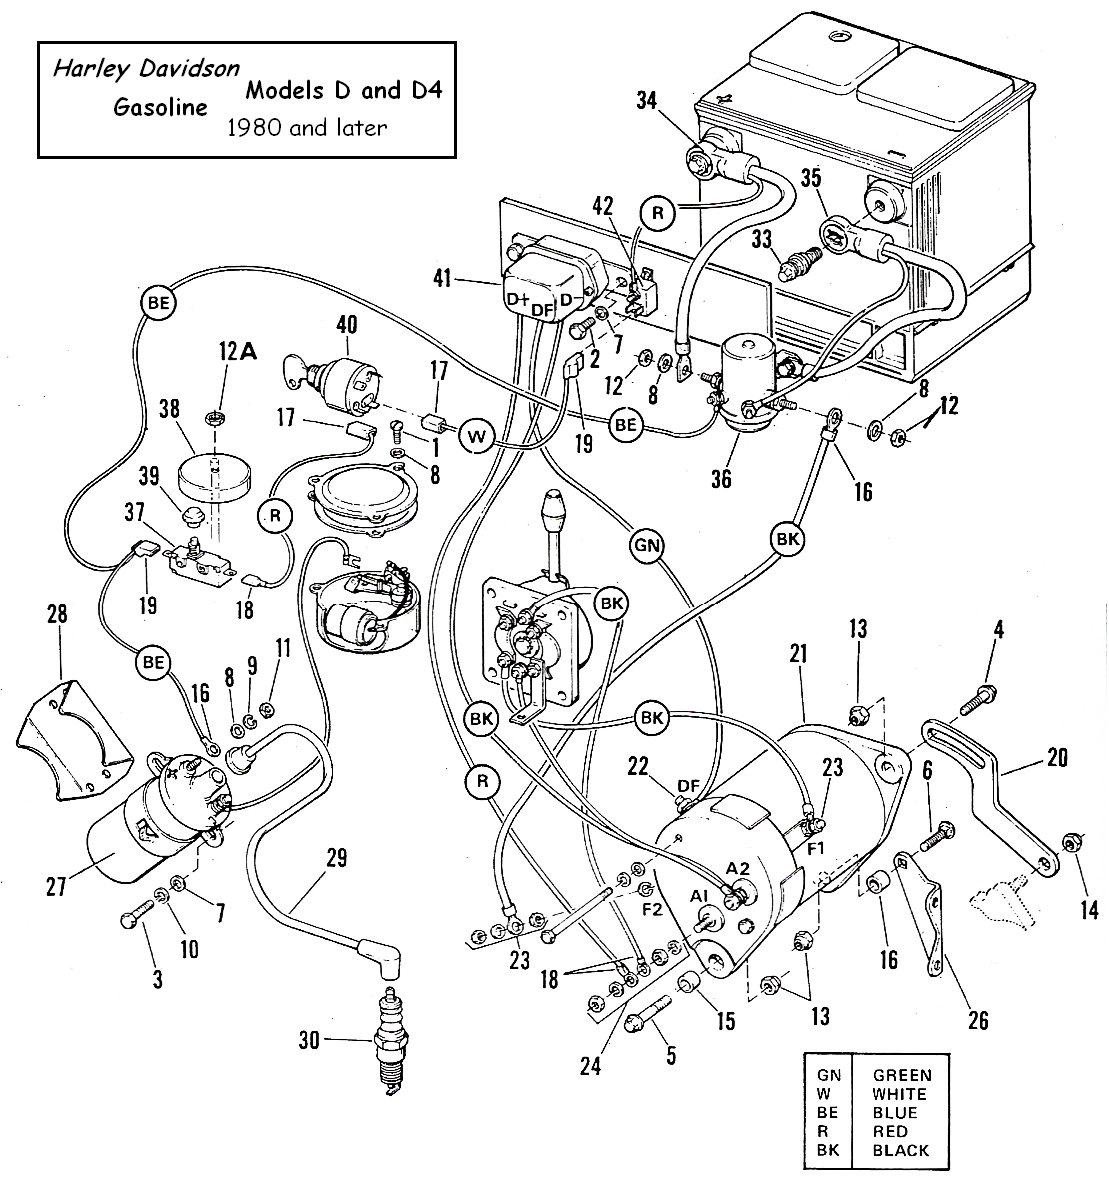 hight resolution of hg 101 resize 665 2c720 48 volt columbia par car with sevcon controller columbia par car wiring diagram